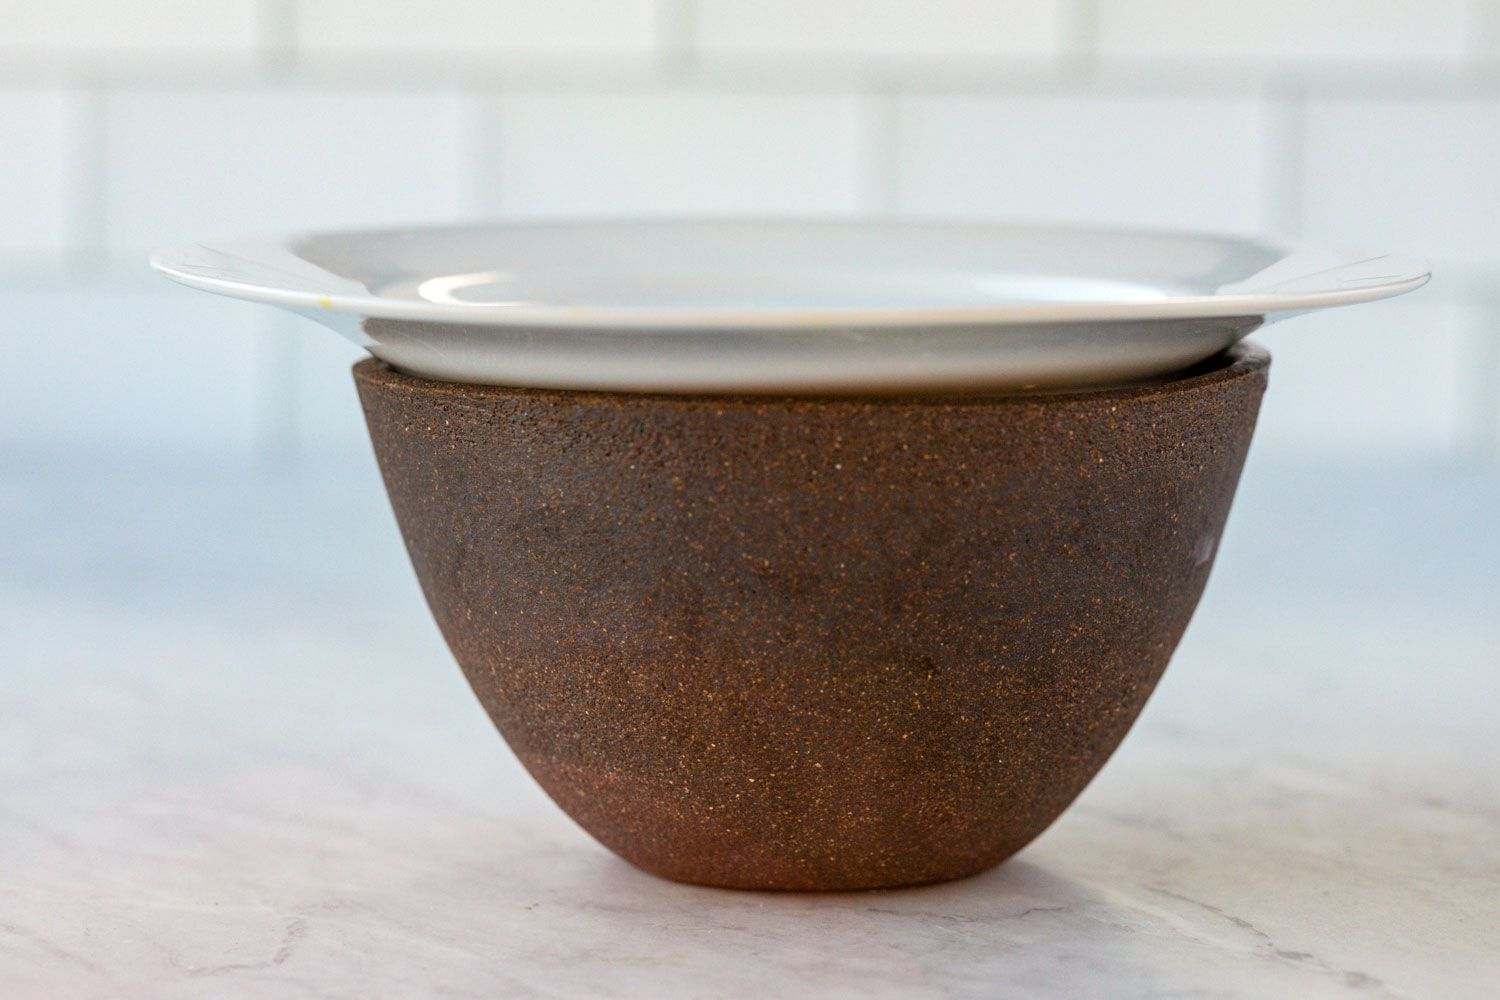 cover the bowl with a plate